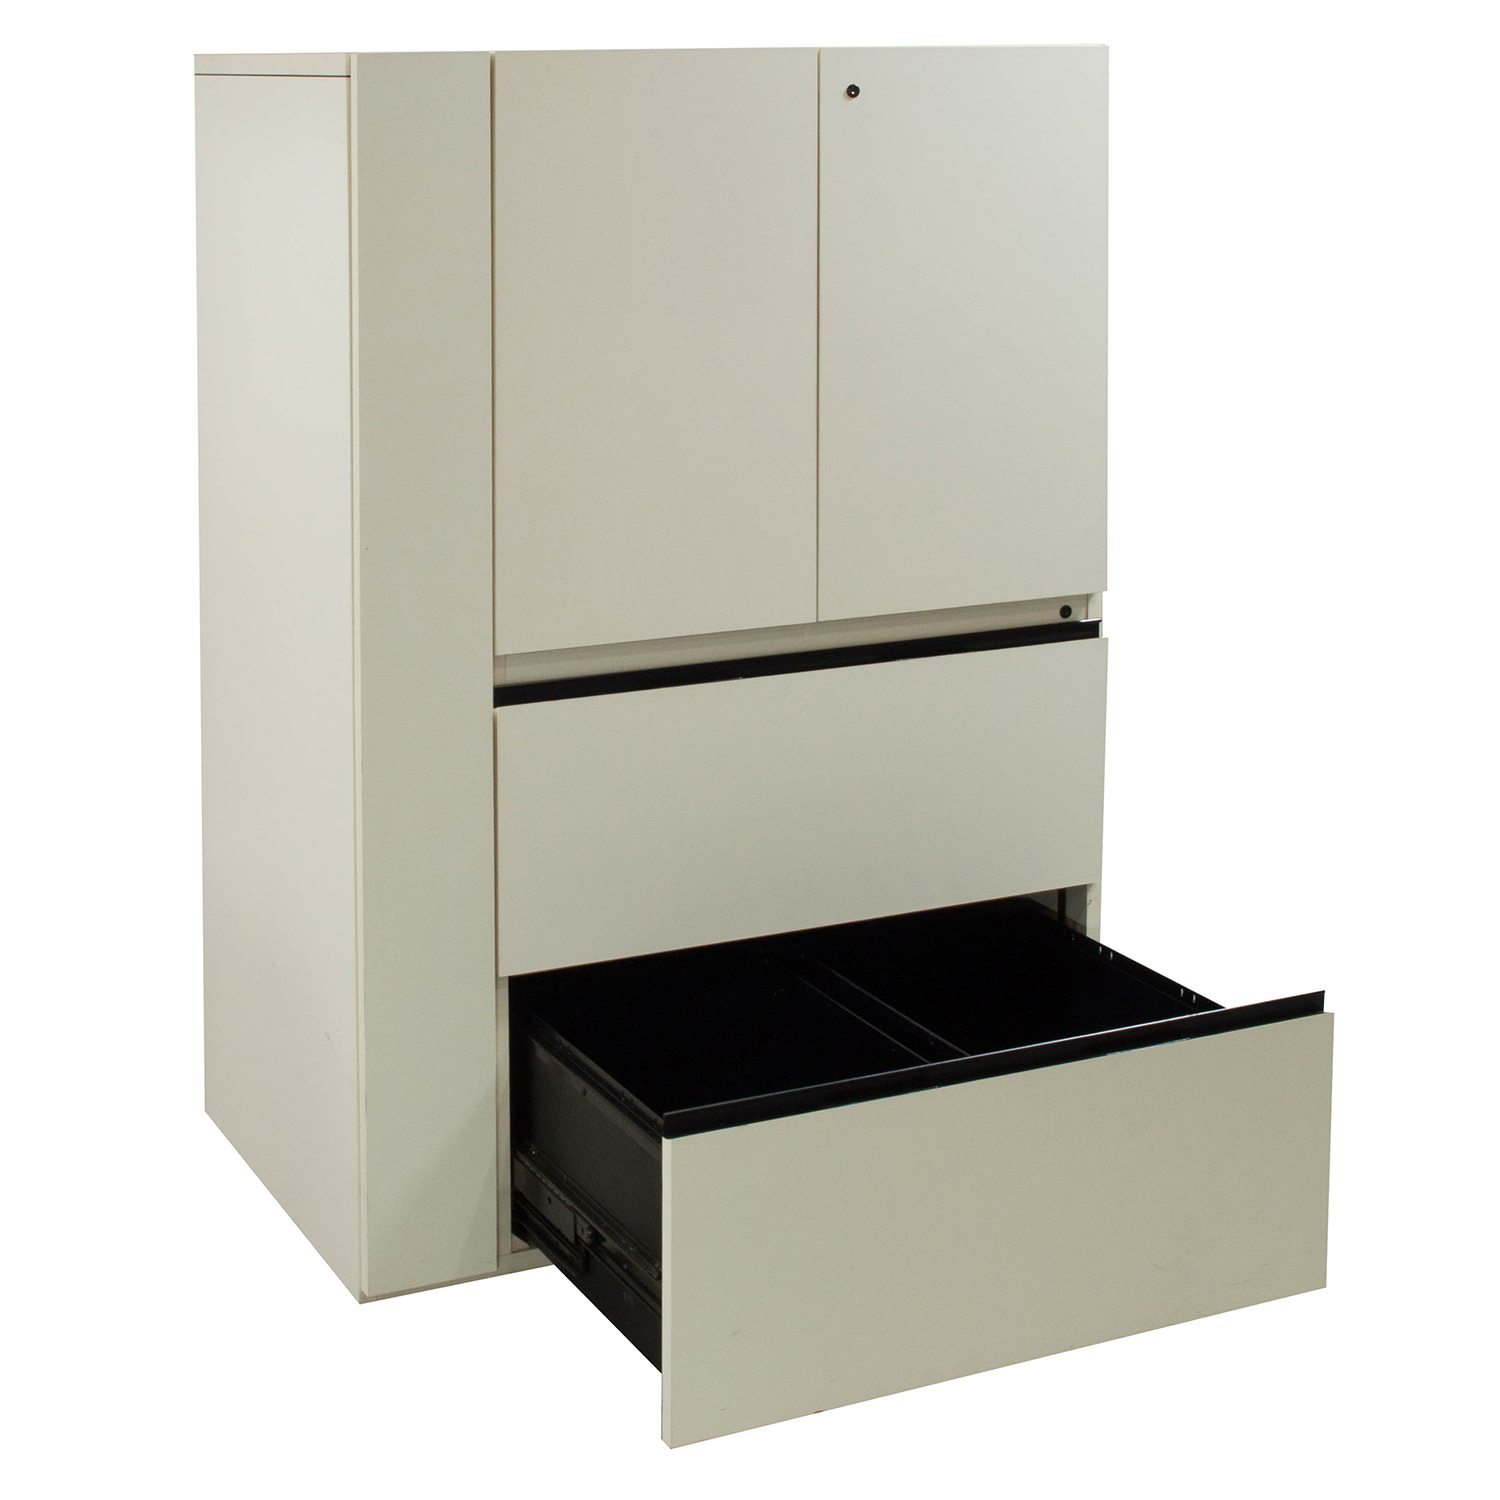 Off White Cabinet Used Laminate Utility Cabinet Off White National Office